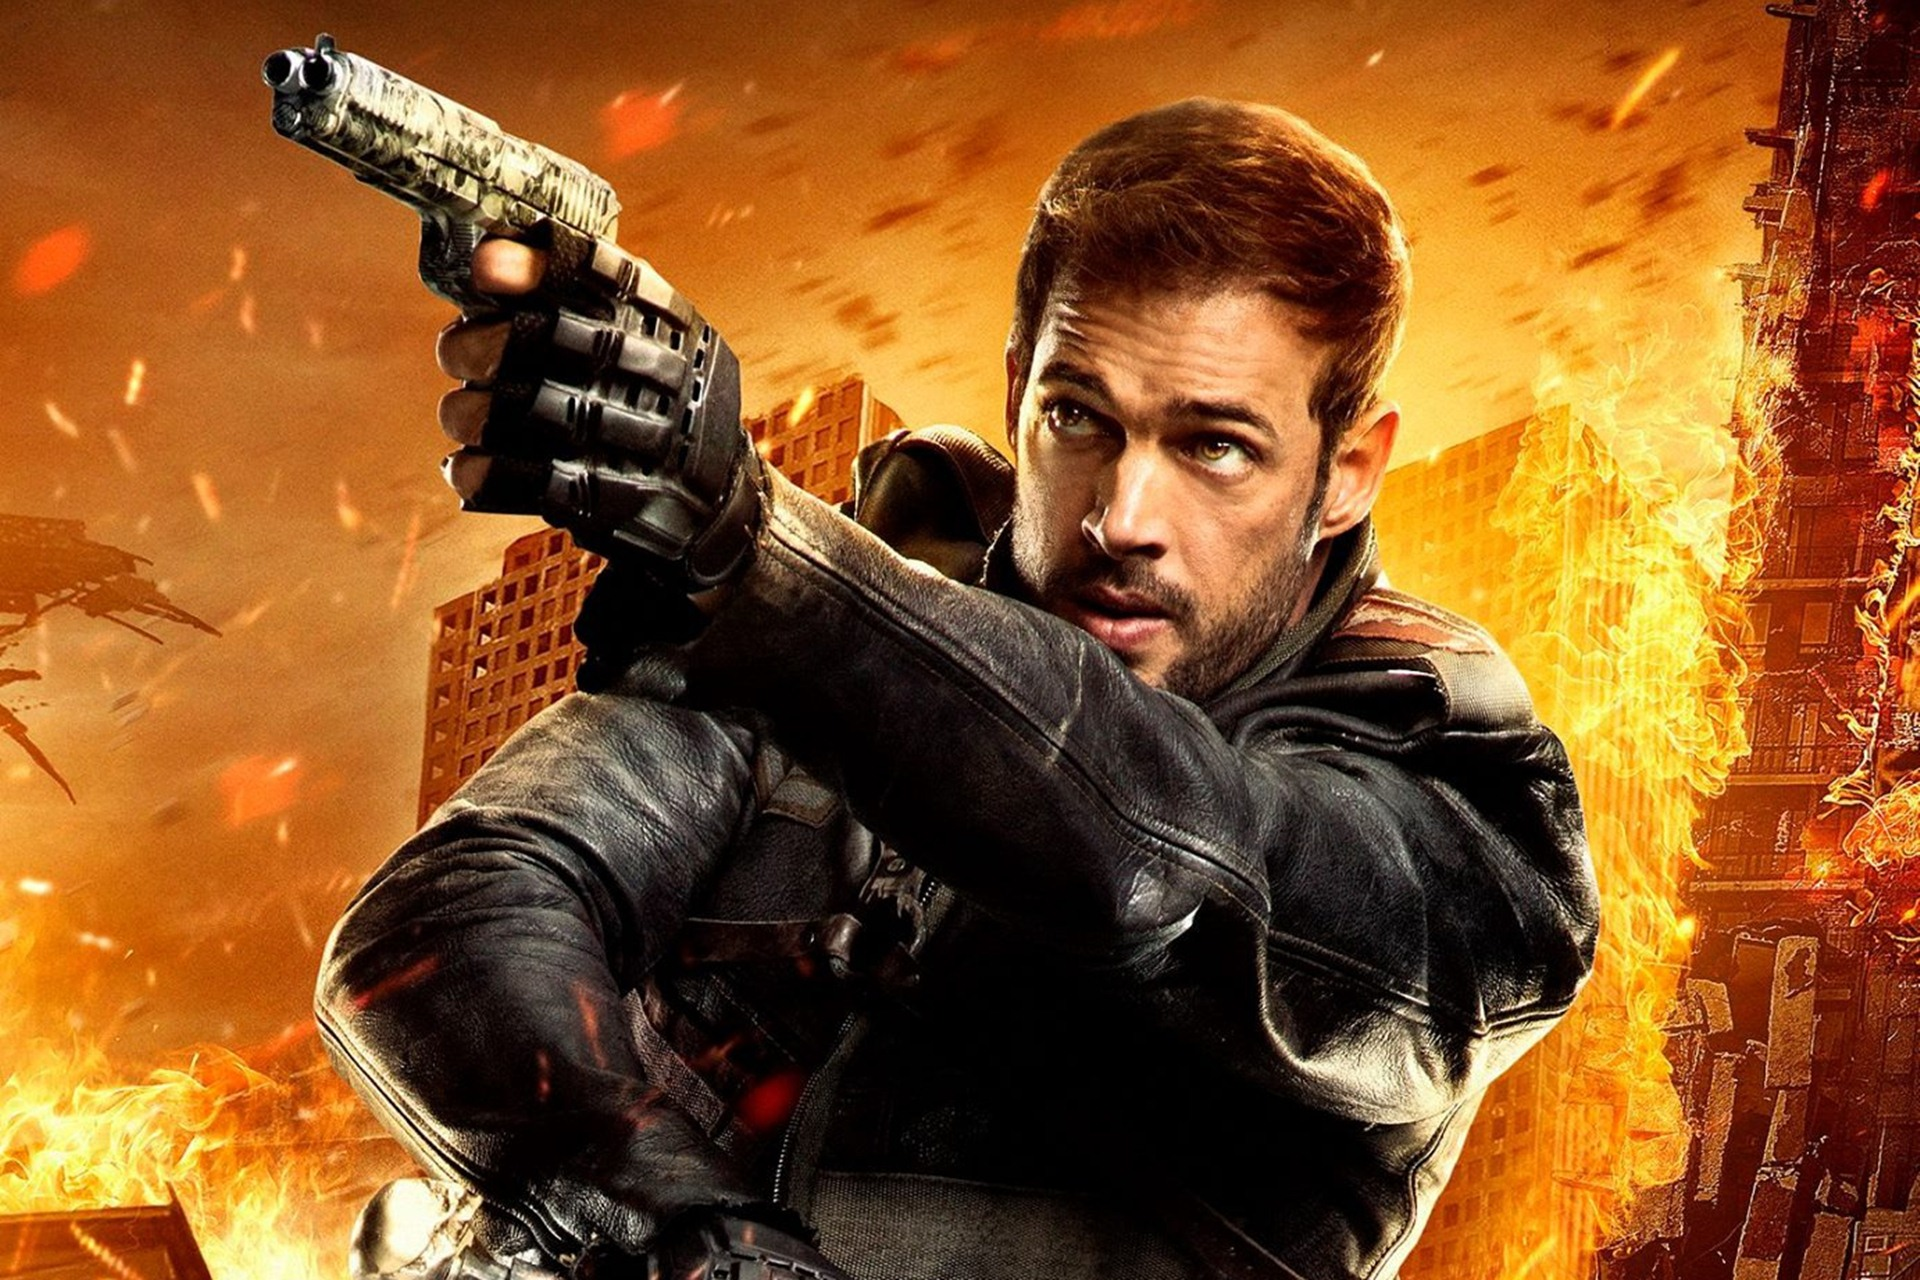 William Levy Resident Evil The Final Chapter Wallpaper - Resident Evil The Final  Chapter ۲۰۱۶ (#1975958) - HD Wallpaper & Backgrounds Download